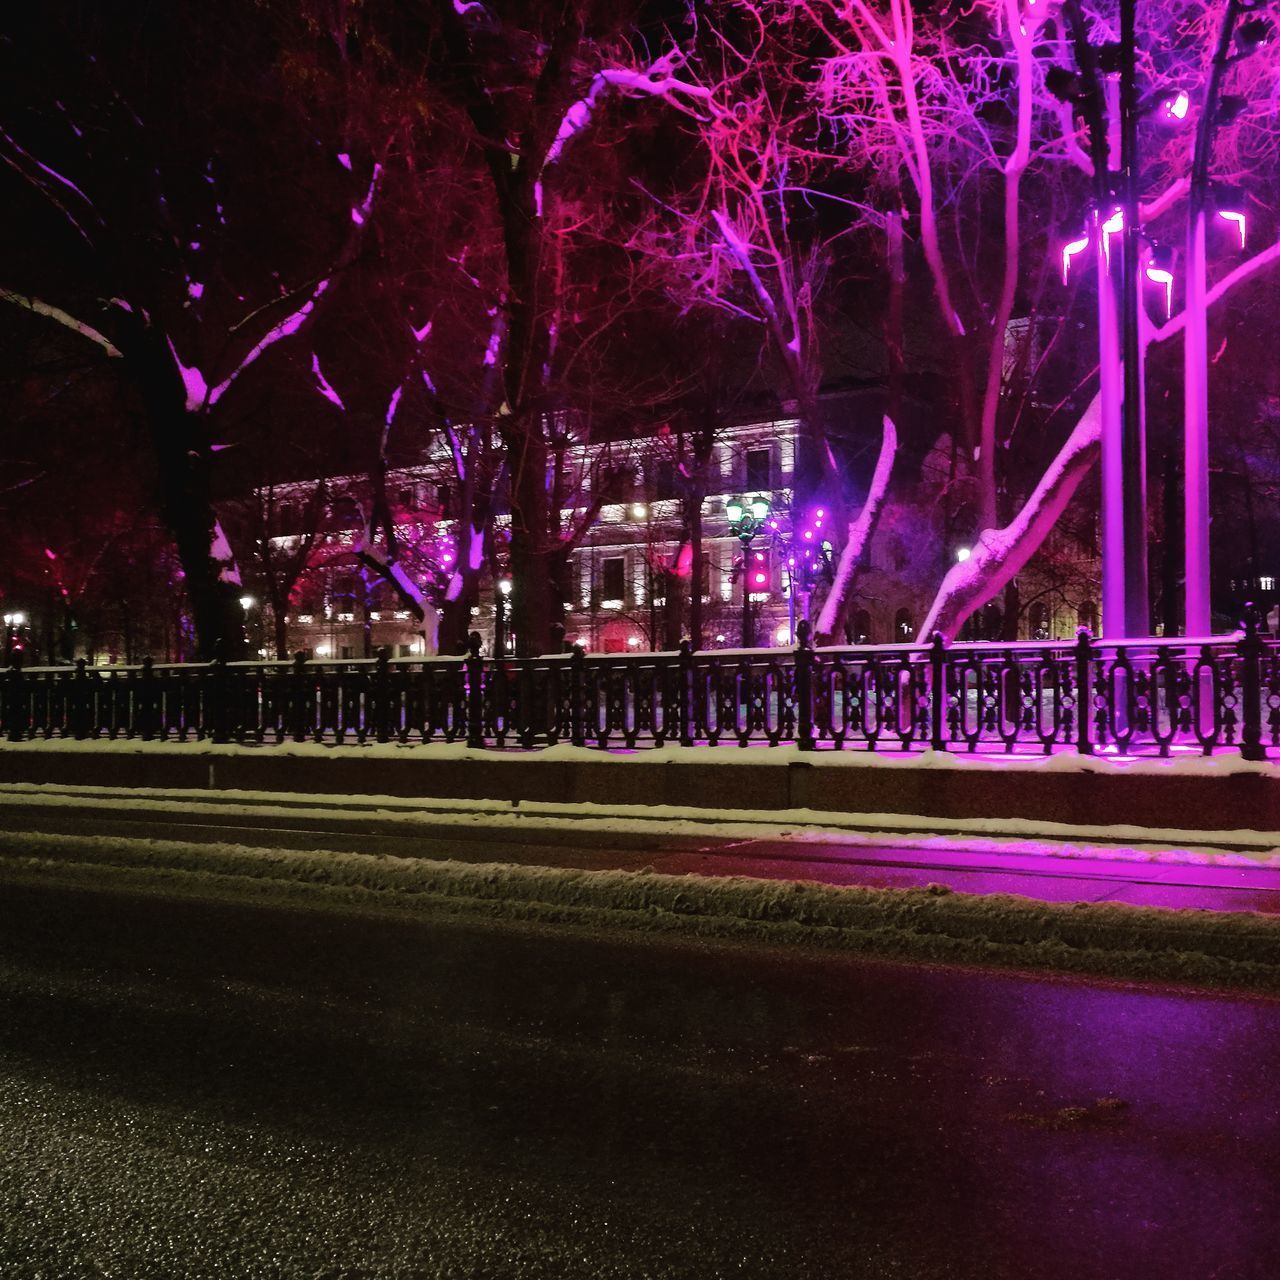 night, illuminated, architecture, building exterior, built structure, city, lighting equipment, plant, no people, nature, tree, outdoors, grass, light - natural phenomenon, arts culture and entertainment, park, building, multi colored, city life, nightlife, stage, purple